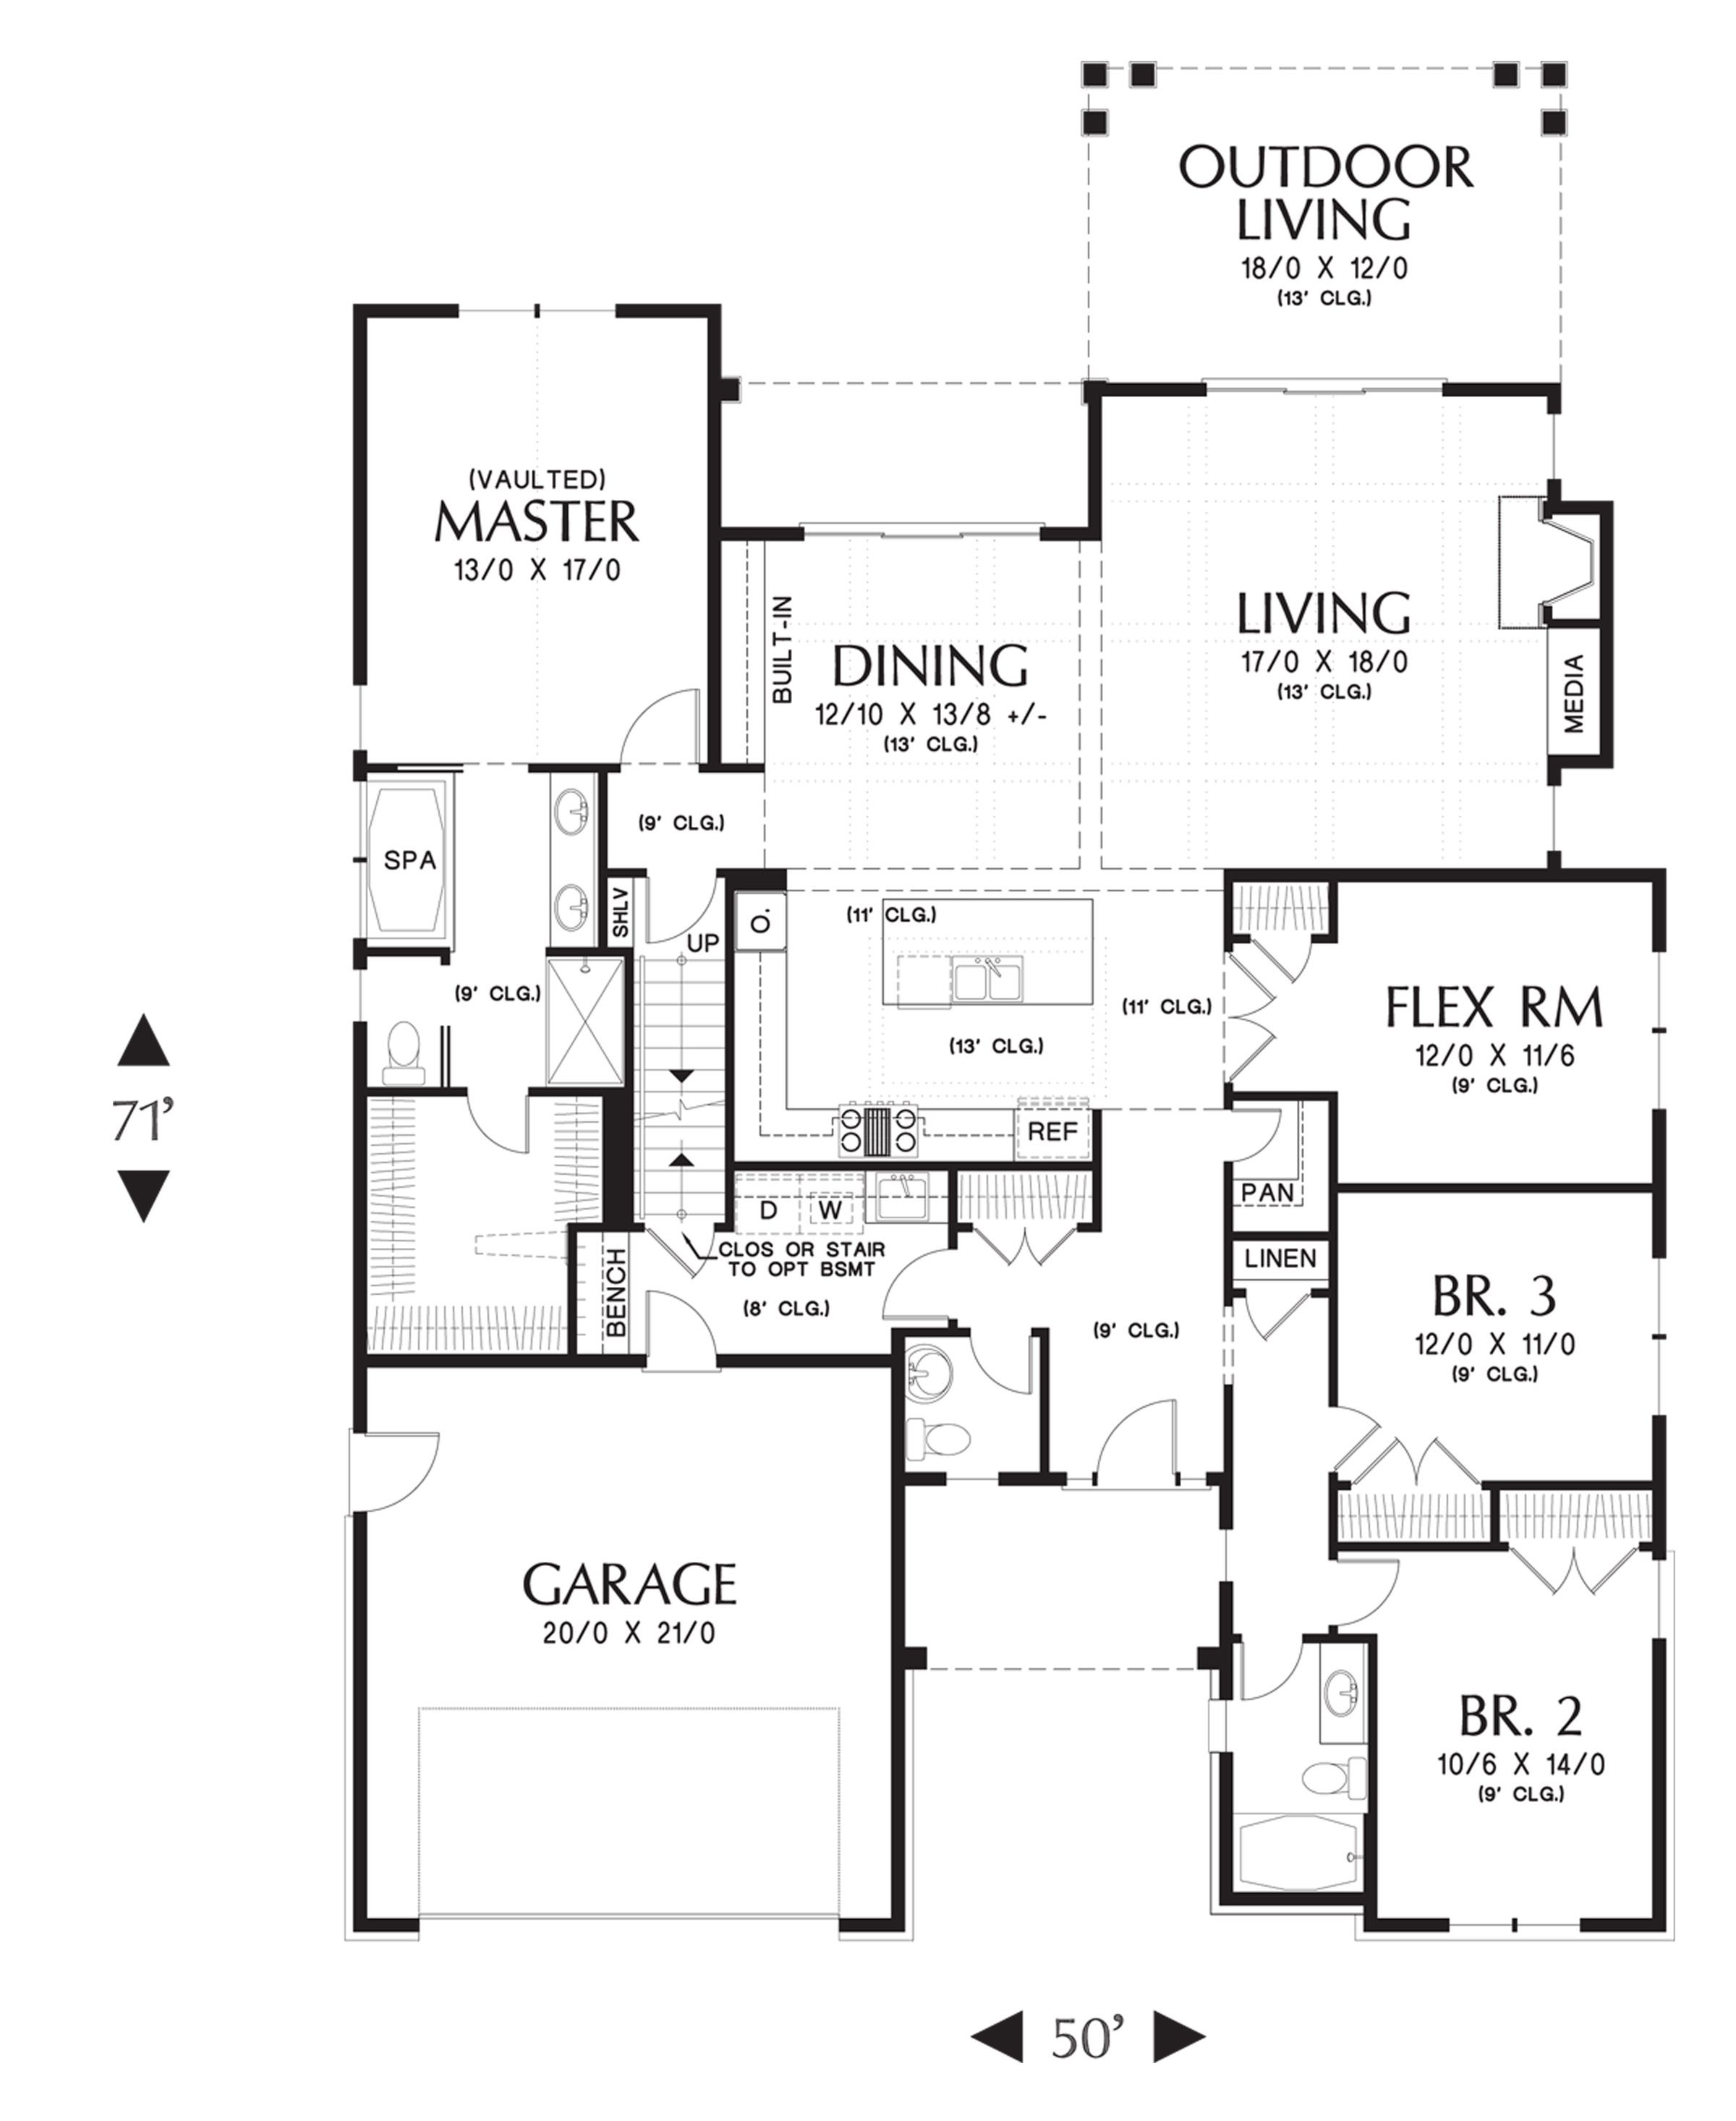 The Cotswolder House Plan has 4BR and 2 5BA and a great open